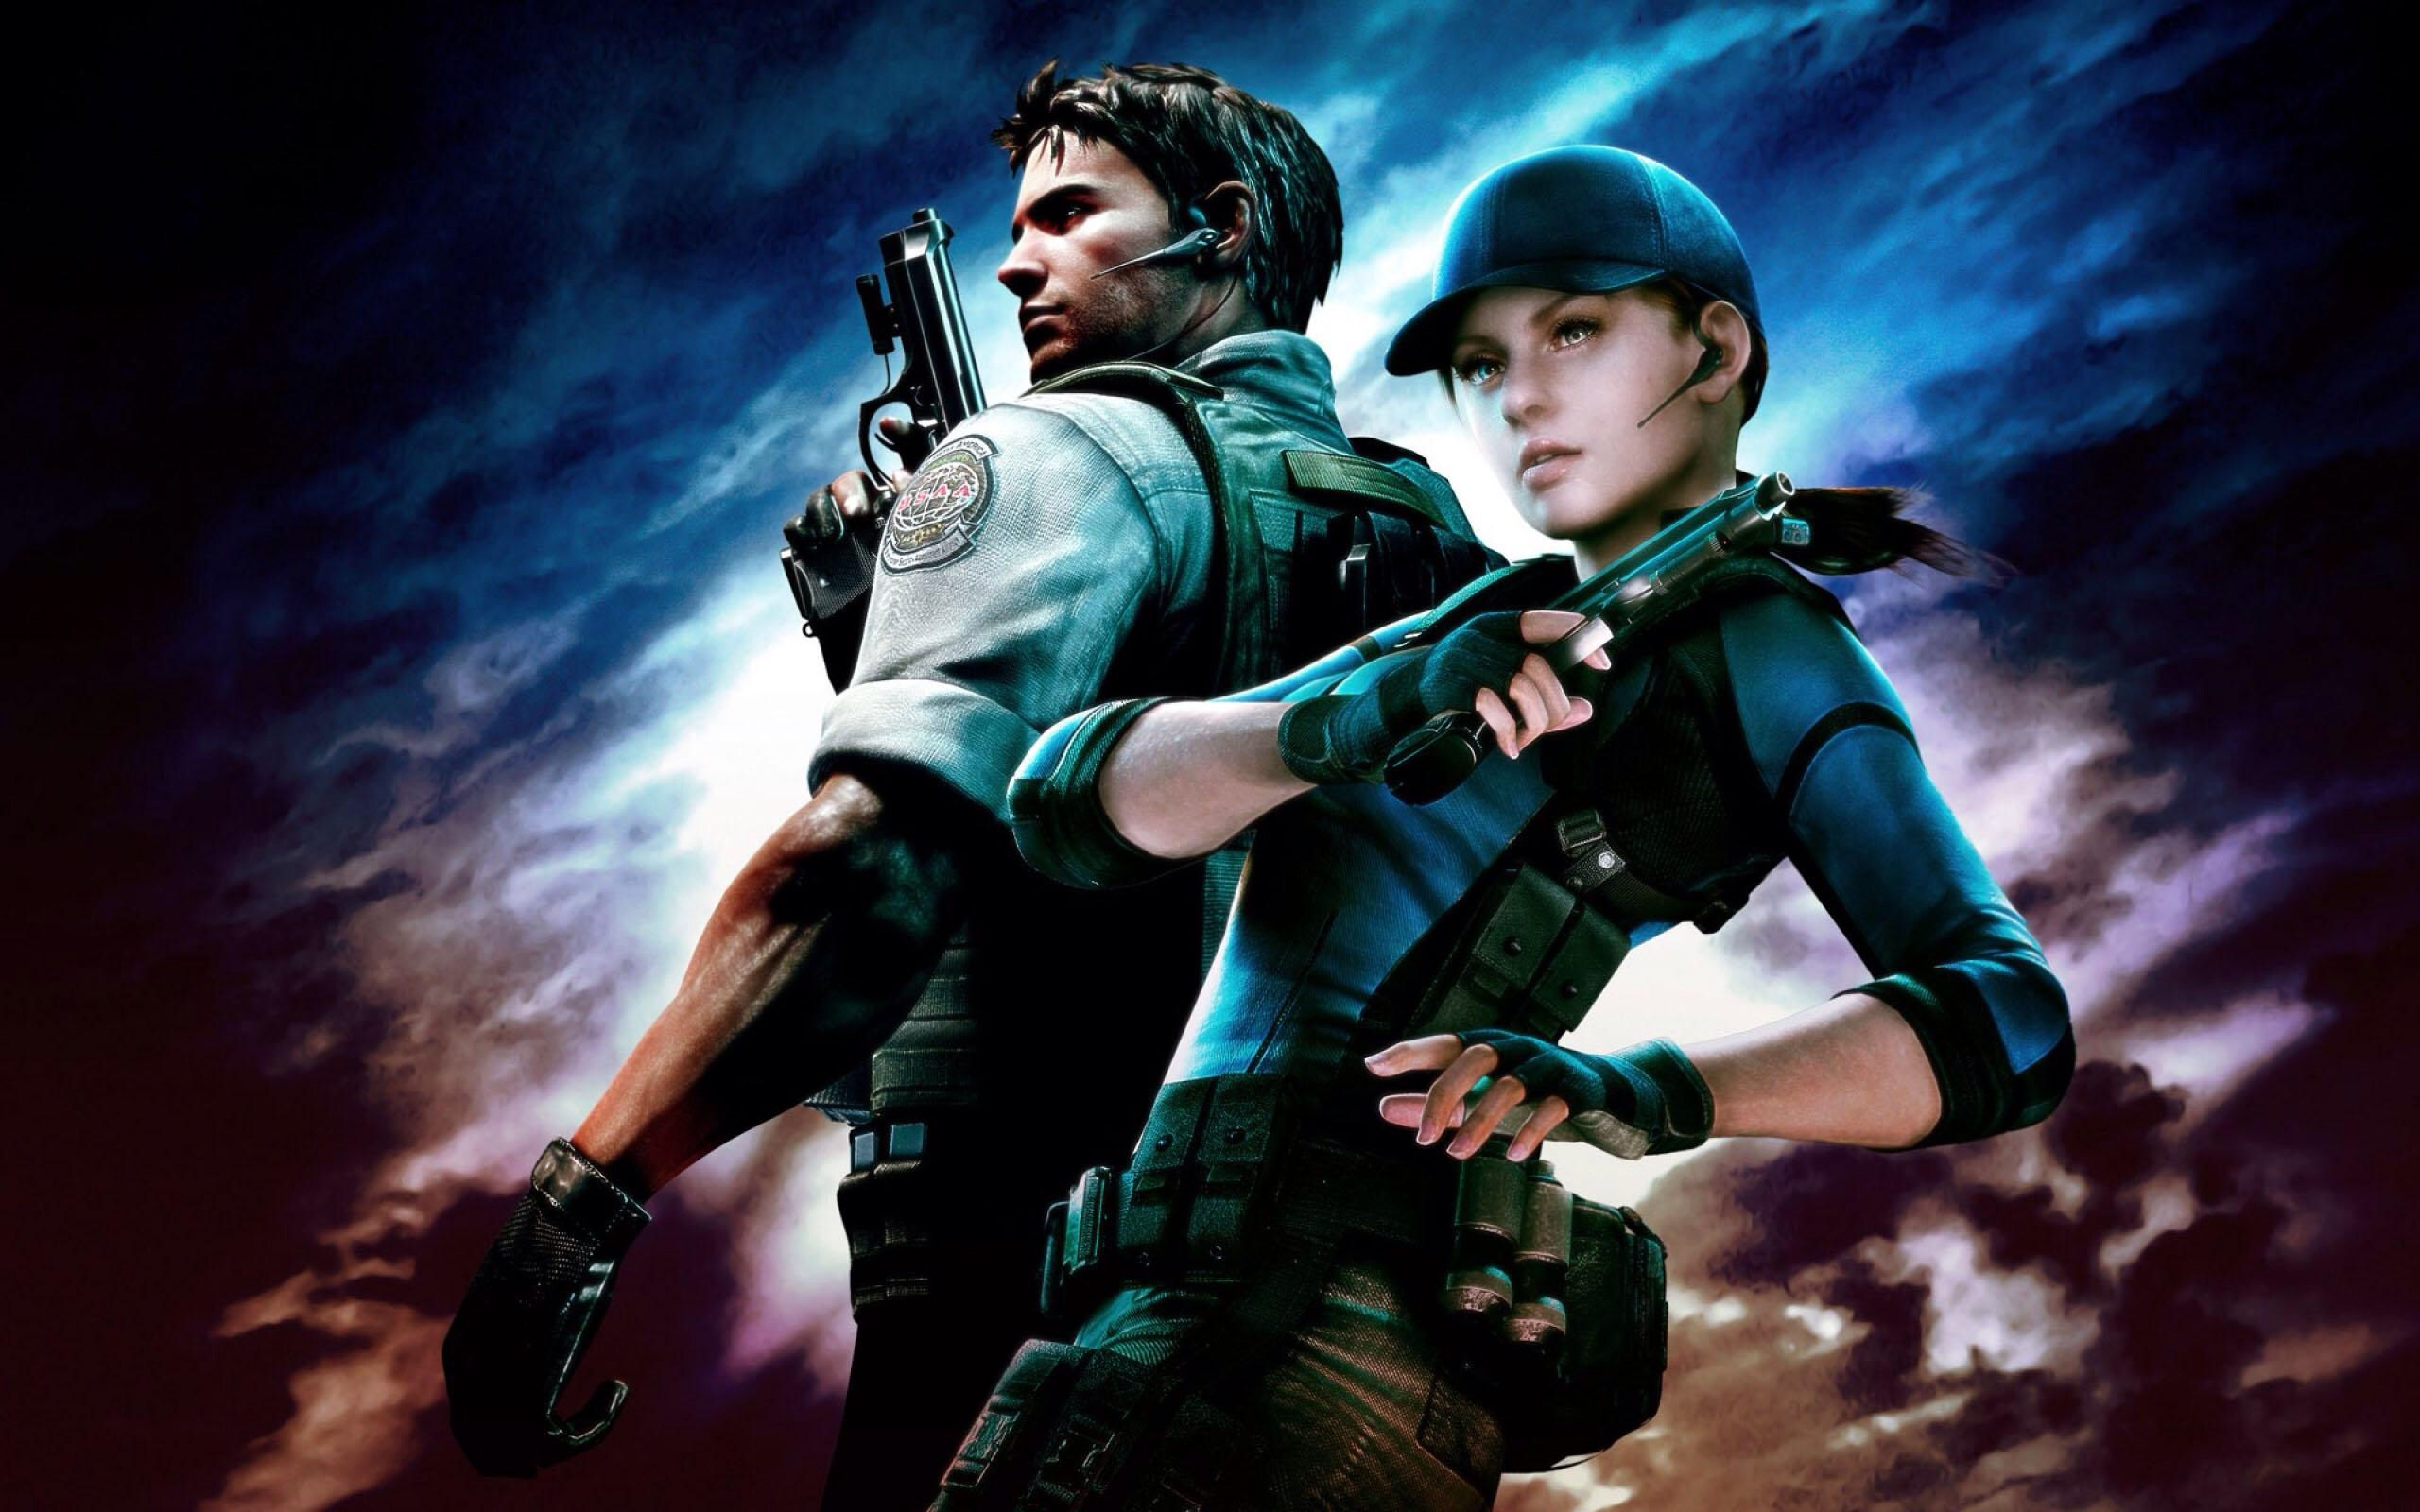 Resident Evil Film Series Based On The Video Games Part 1 2